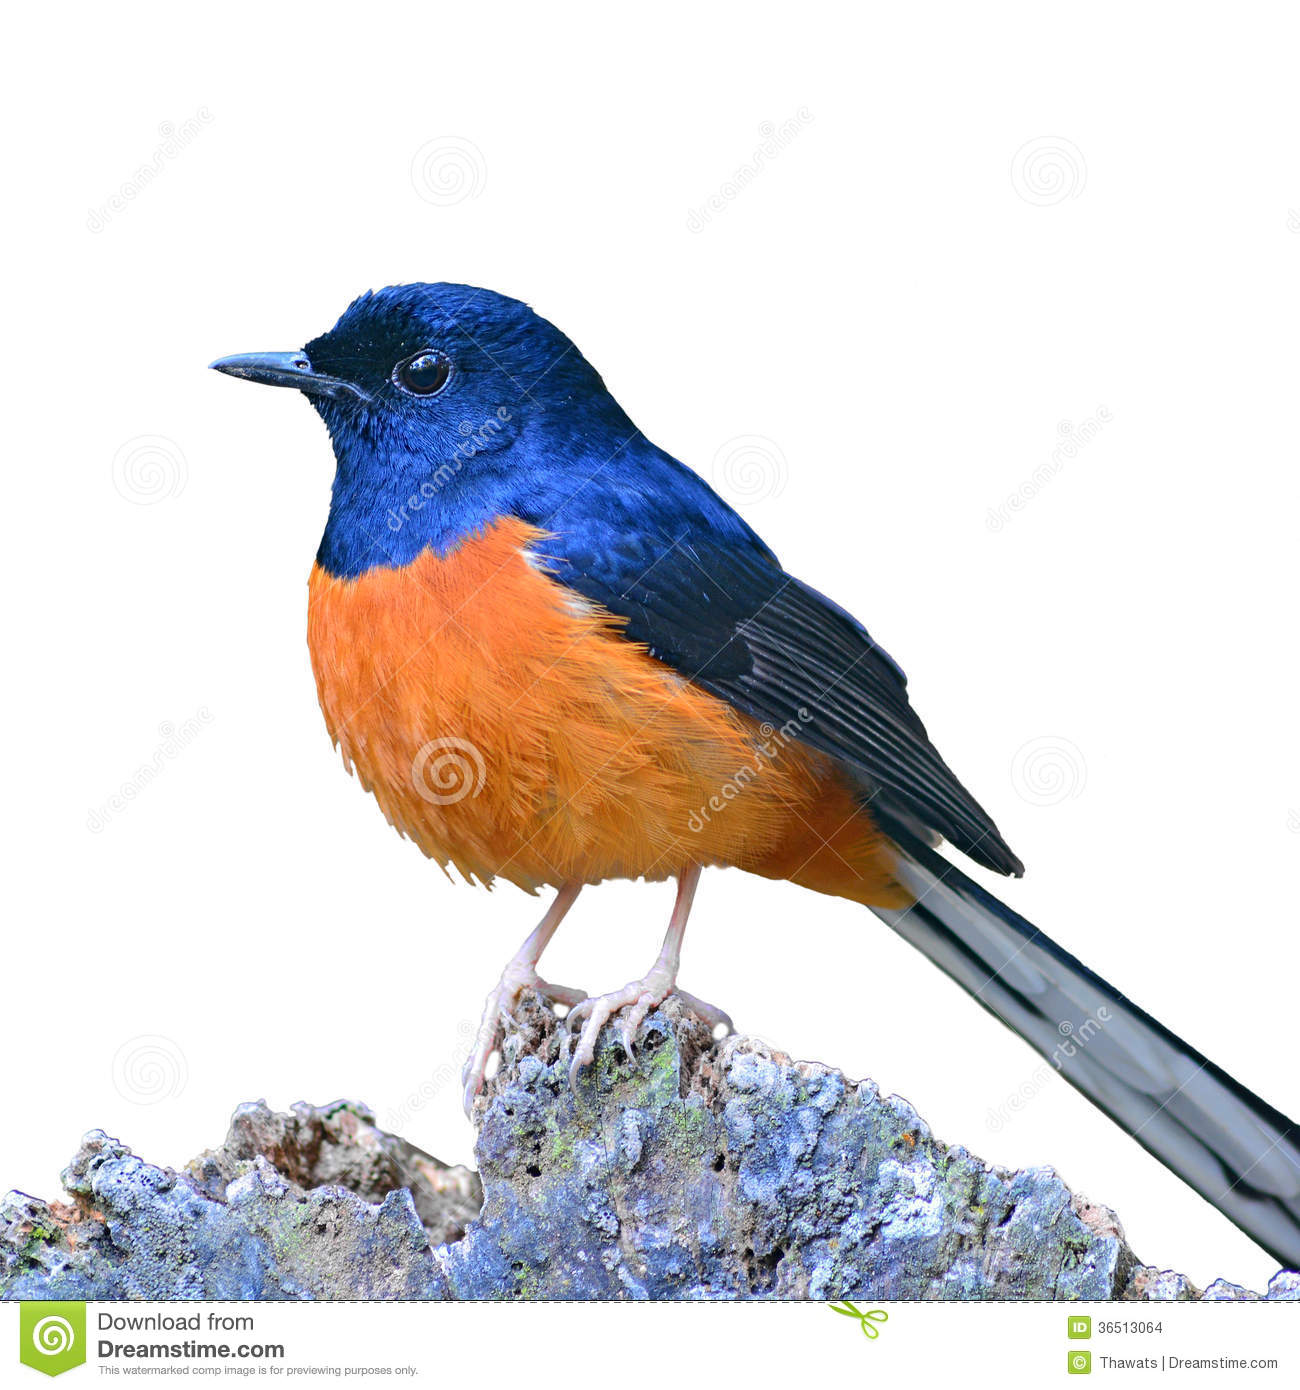 White-rumped Shama clipart #10, Download drawings